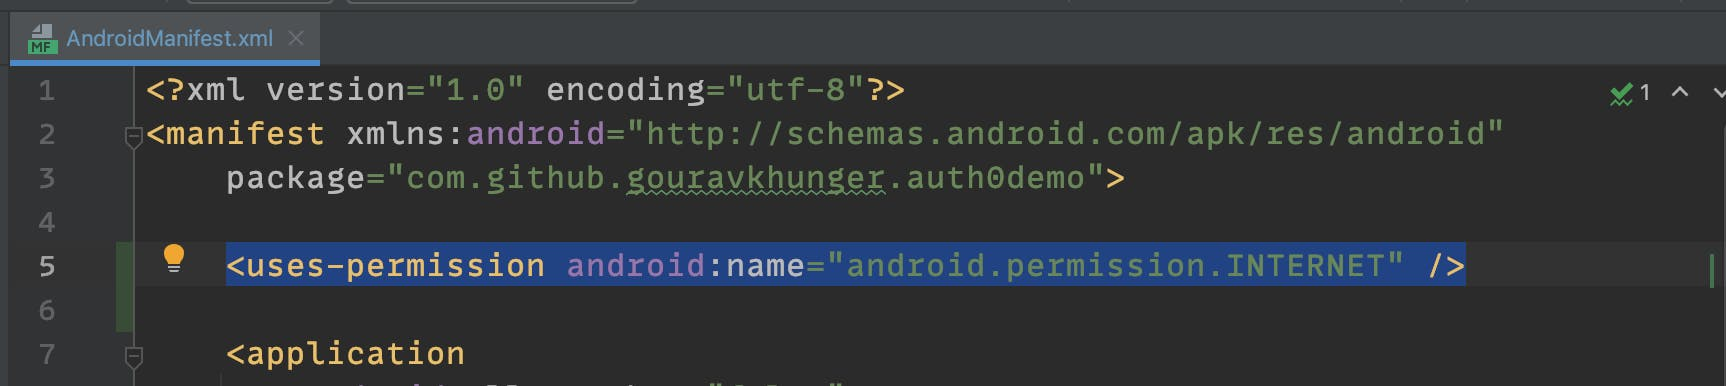 Adding internet permission in AndroidManifest.xml file